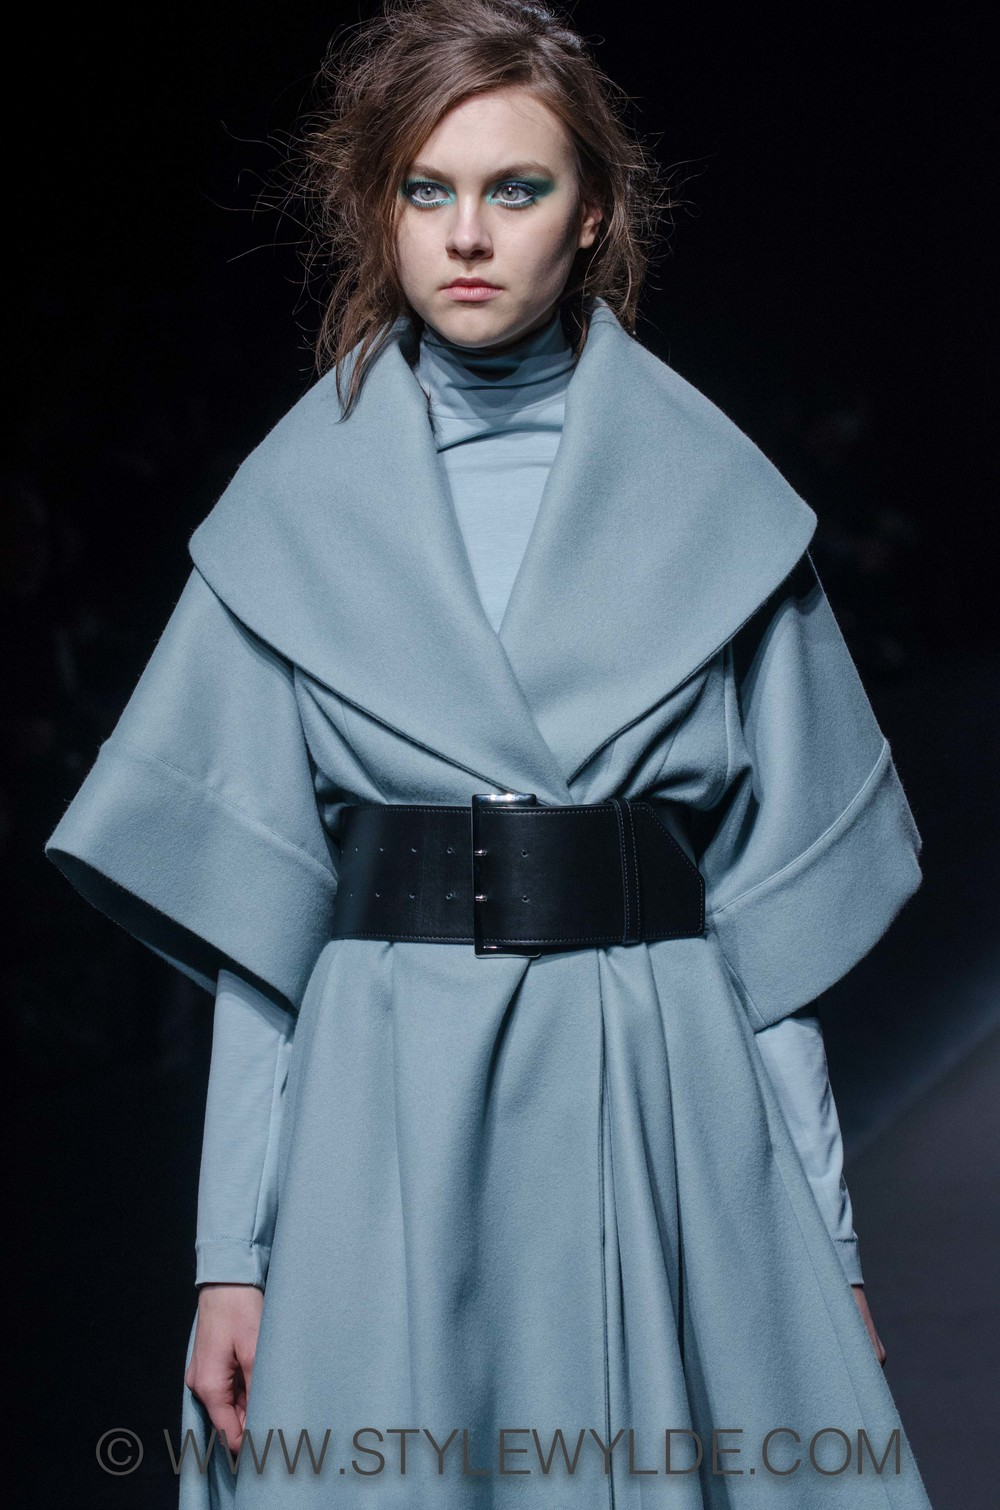 stylewylde_ADF_AW14_FOH_Story (1 of 1)-8.jpg